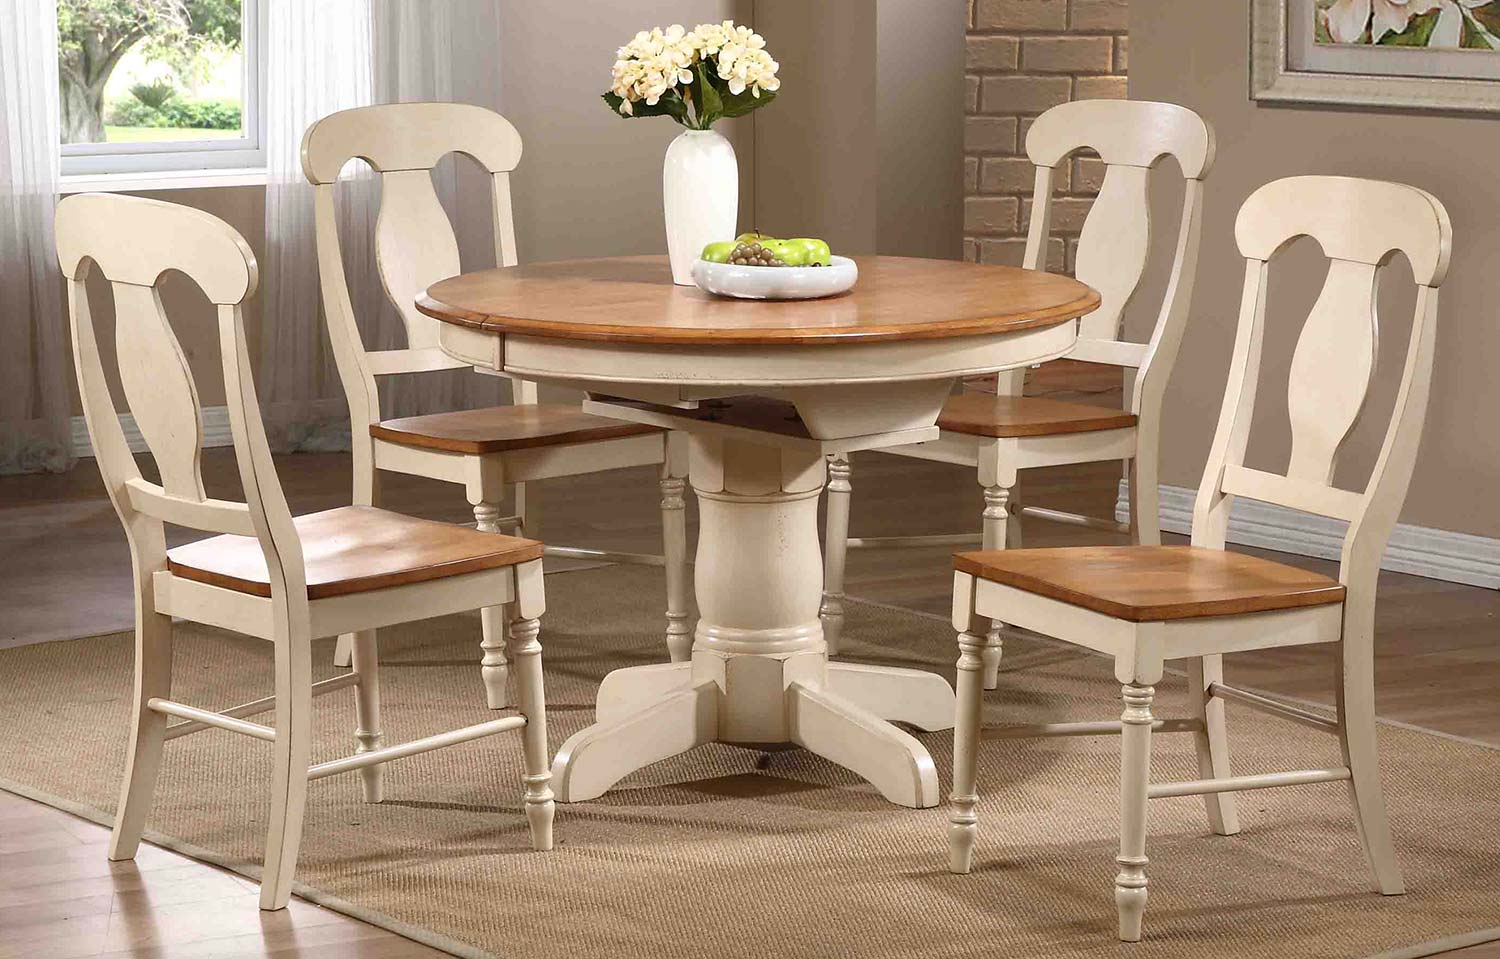 Pedestal Chairs Iconic Furniture Round Oval Pedestal Dining Set With